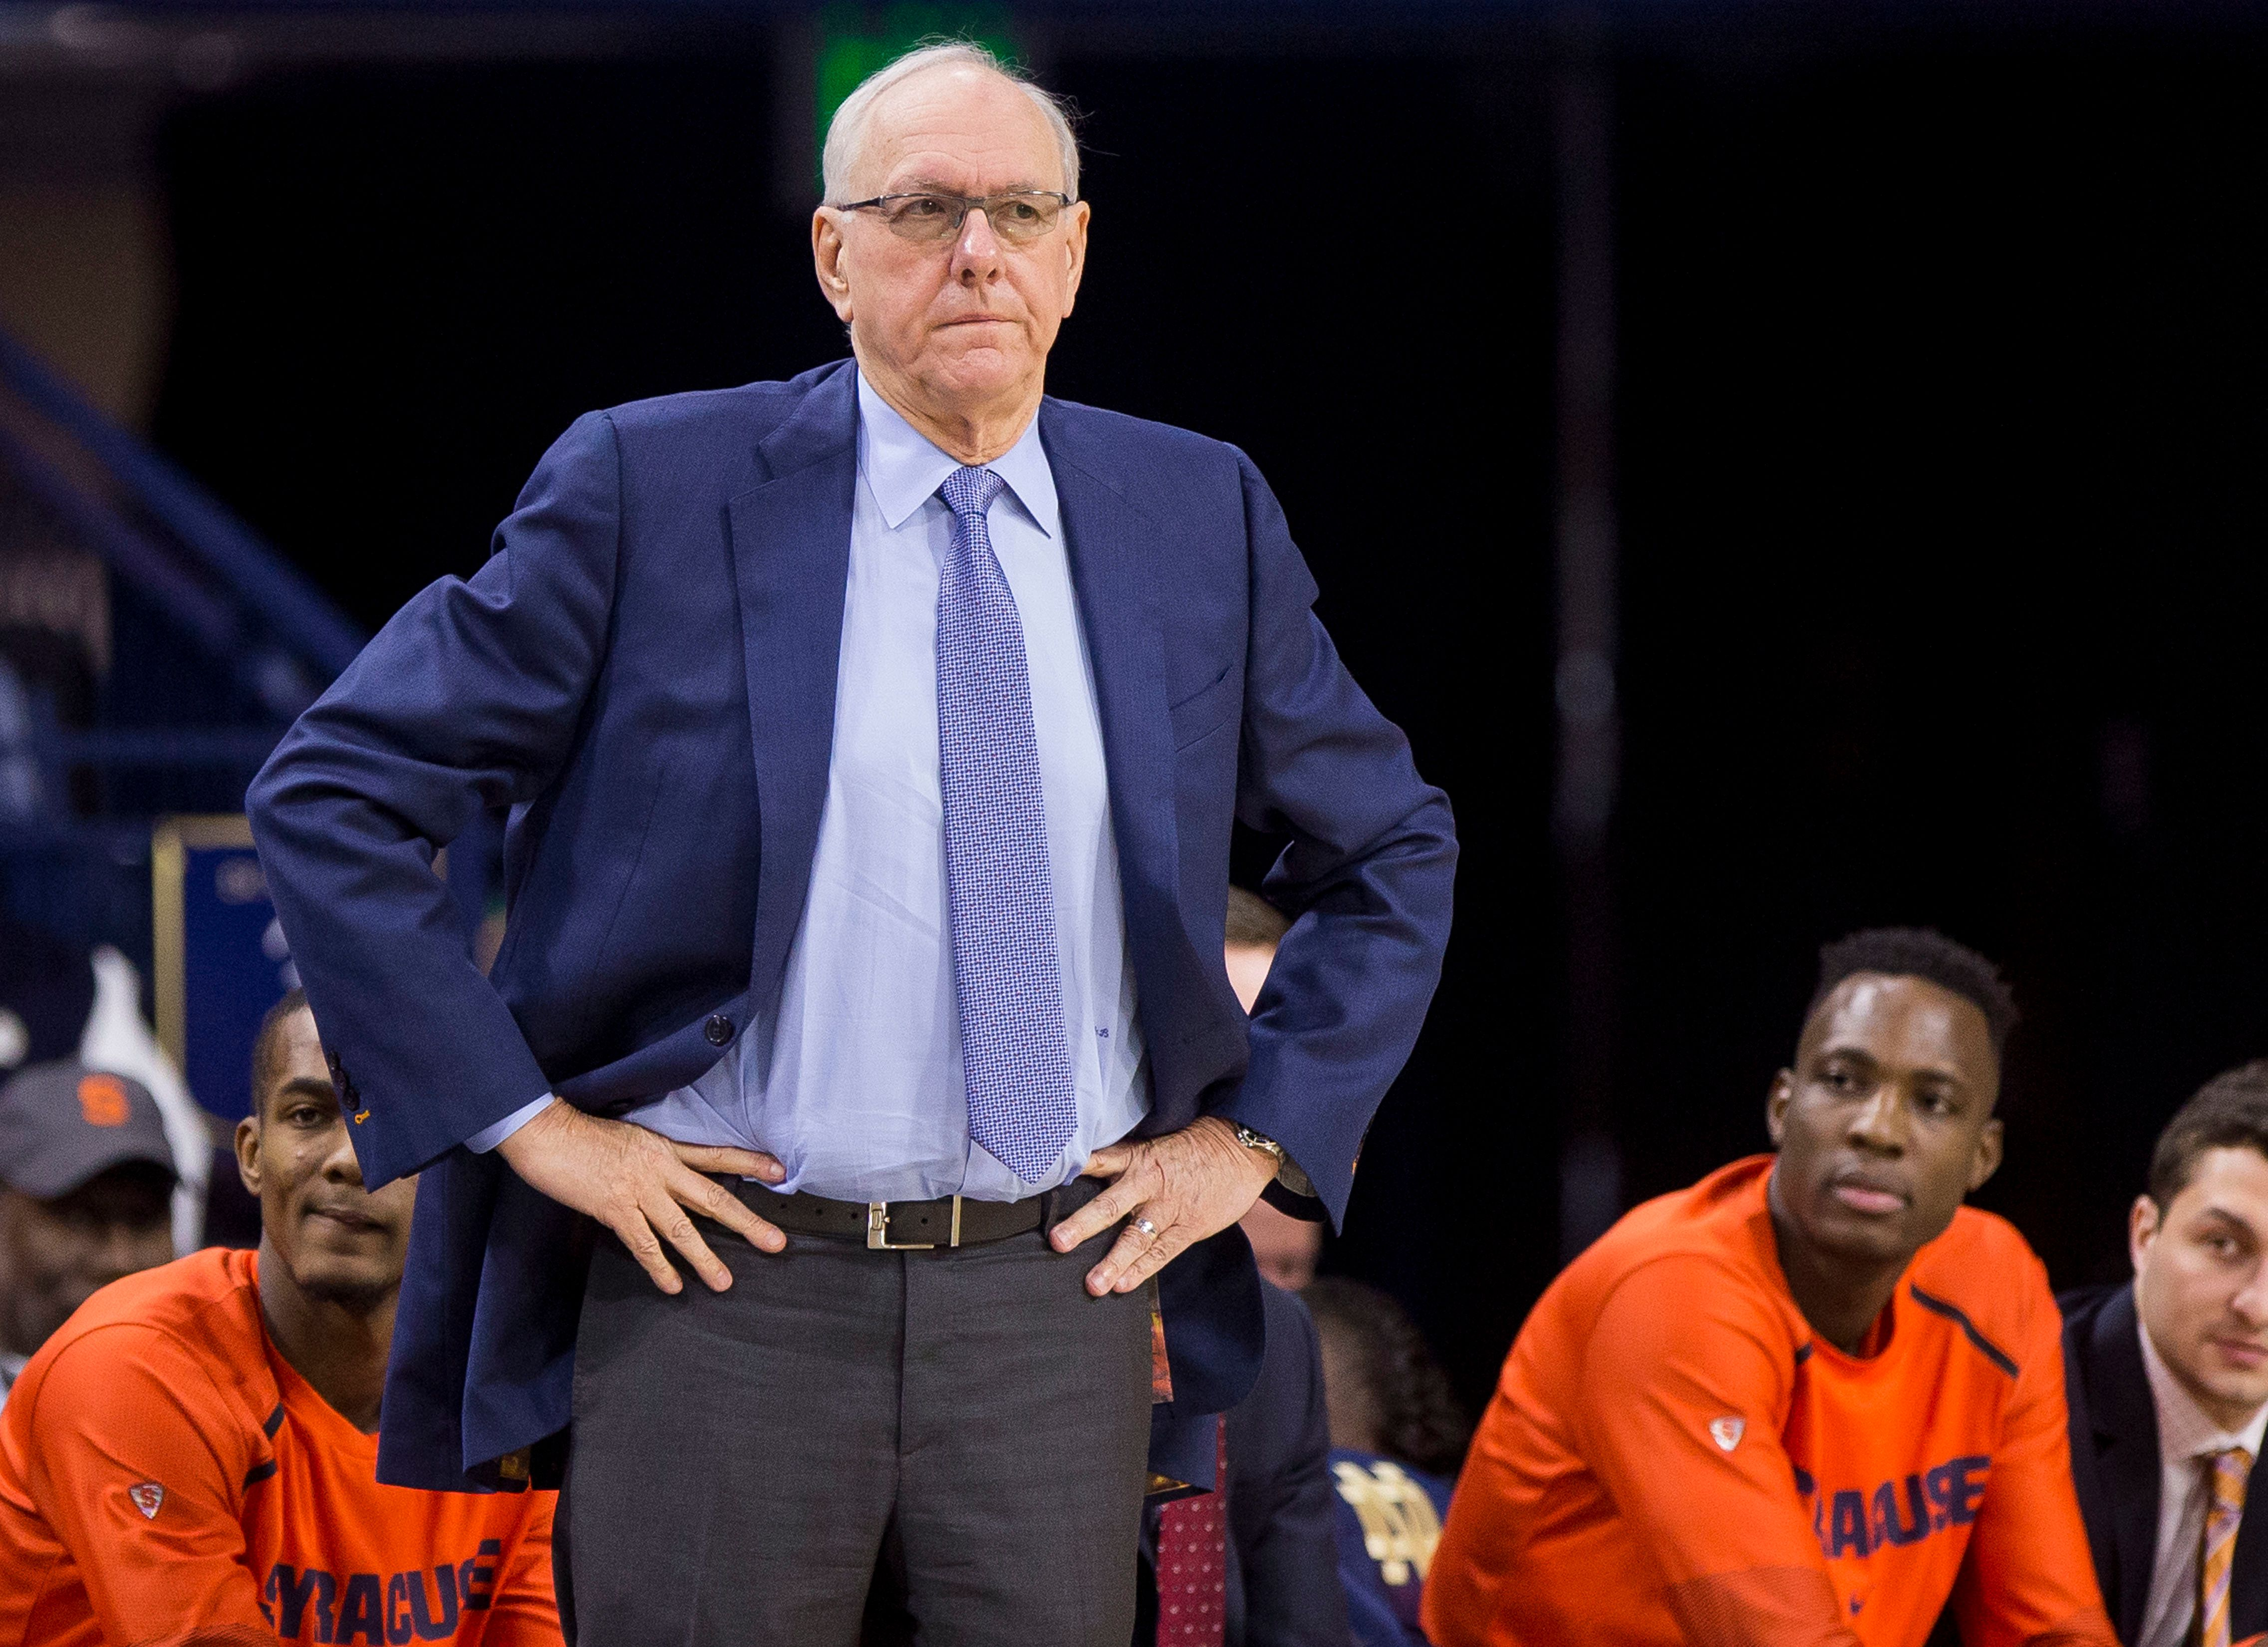 Syracuse head coach Jim Boeheim looks on during the first half of an NCAA college basketball game against Notre Dame Saturday, Jan. 5, 2019, in South Bend, Ind. Syracuse won 72-62. (AP Photo/Robert Franklin)